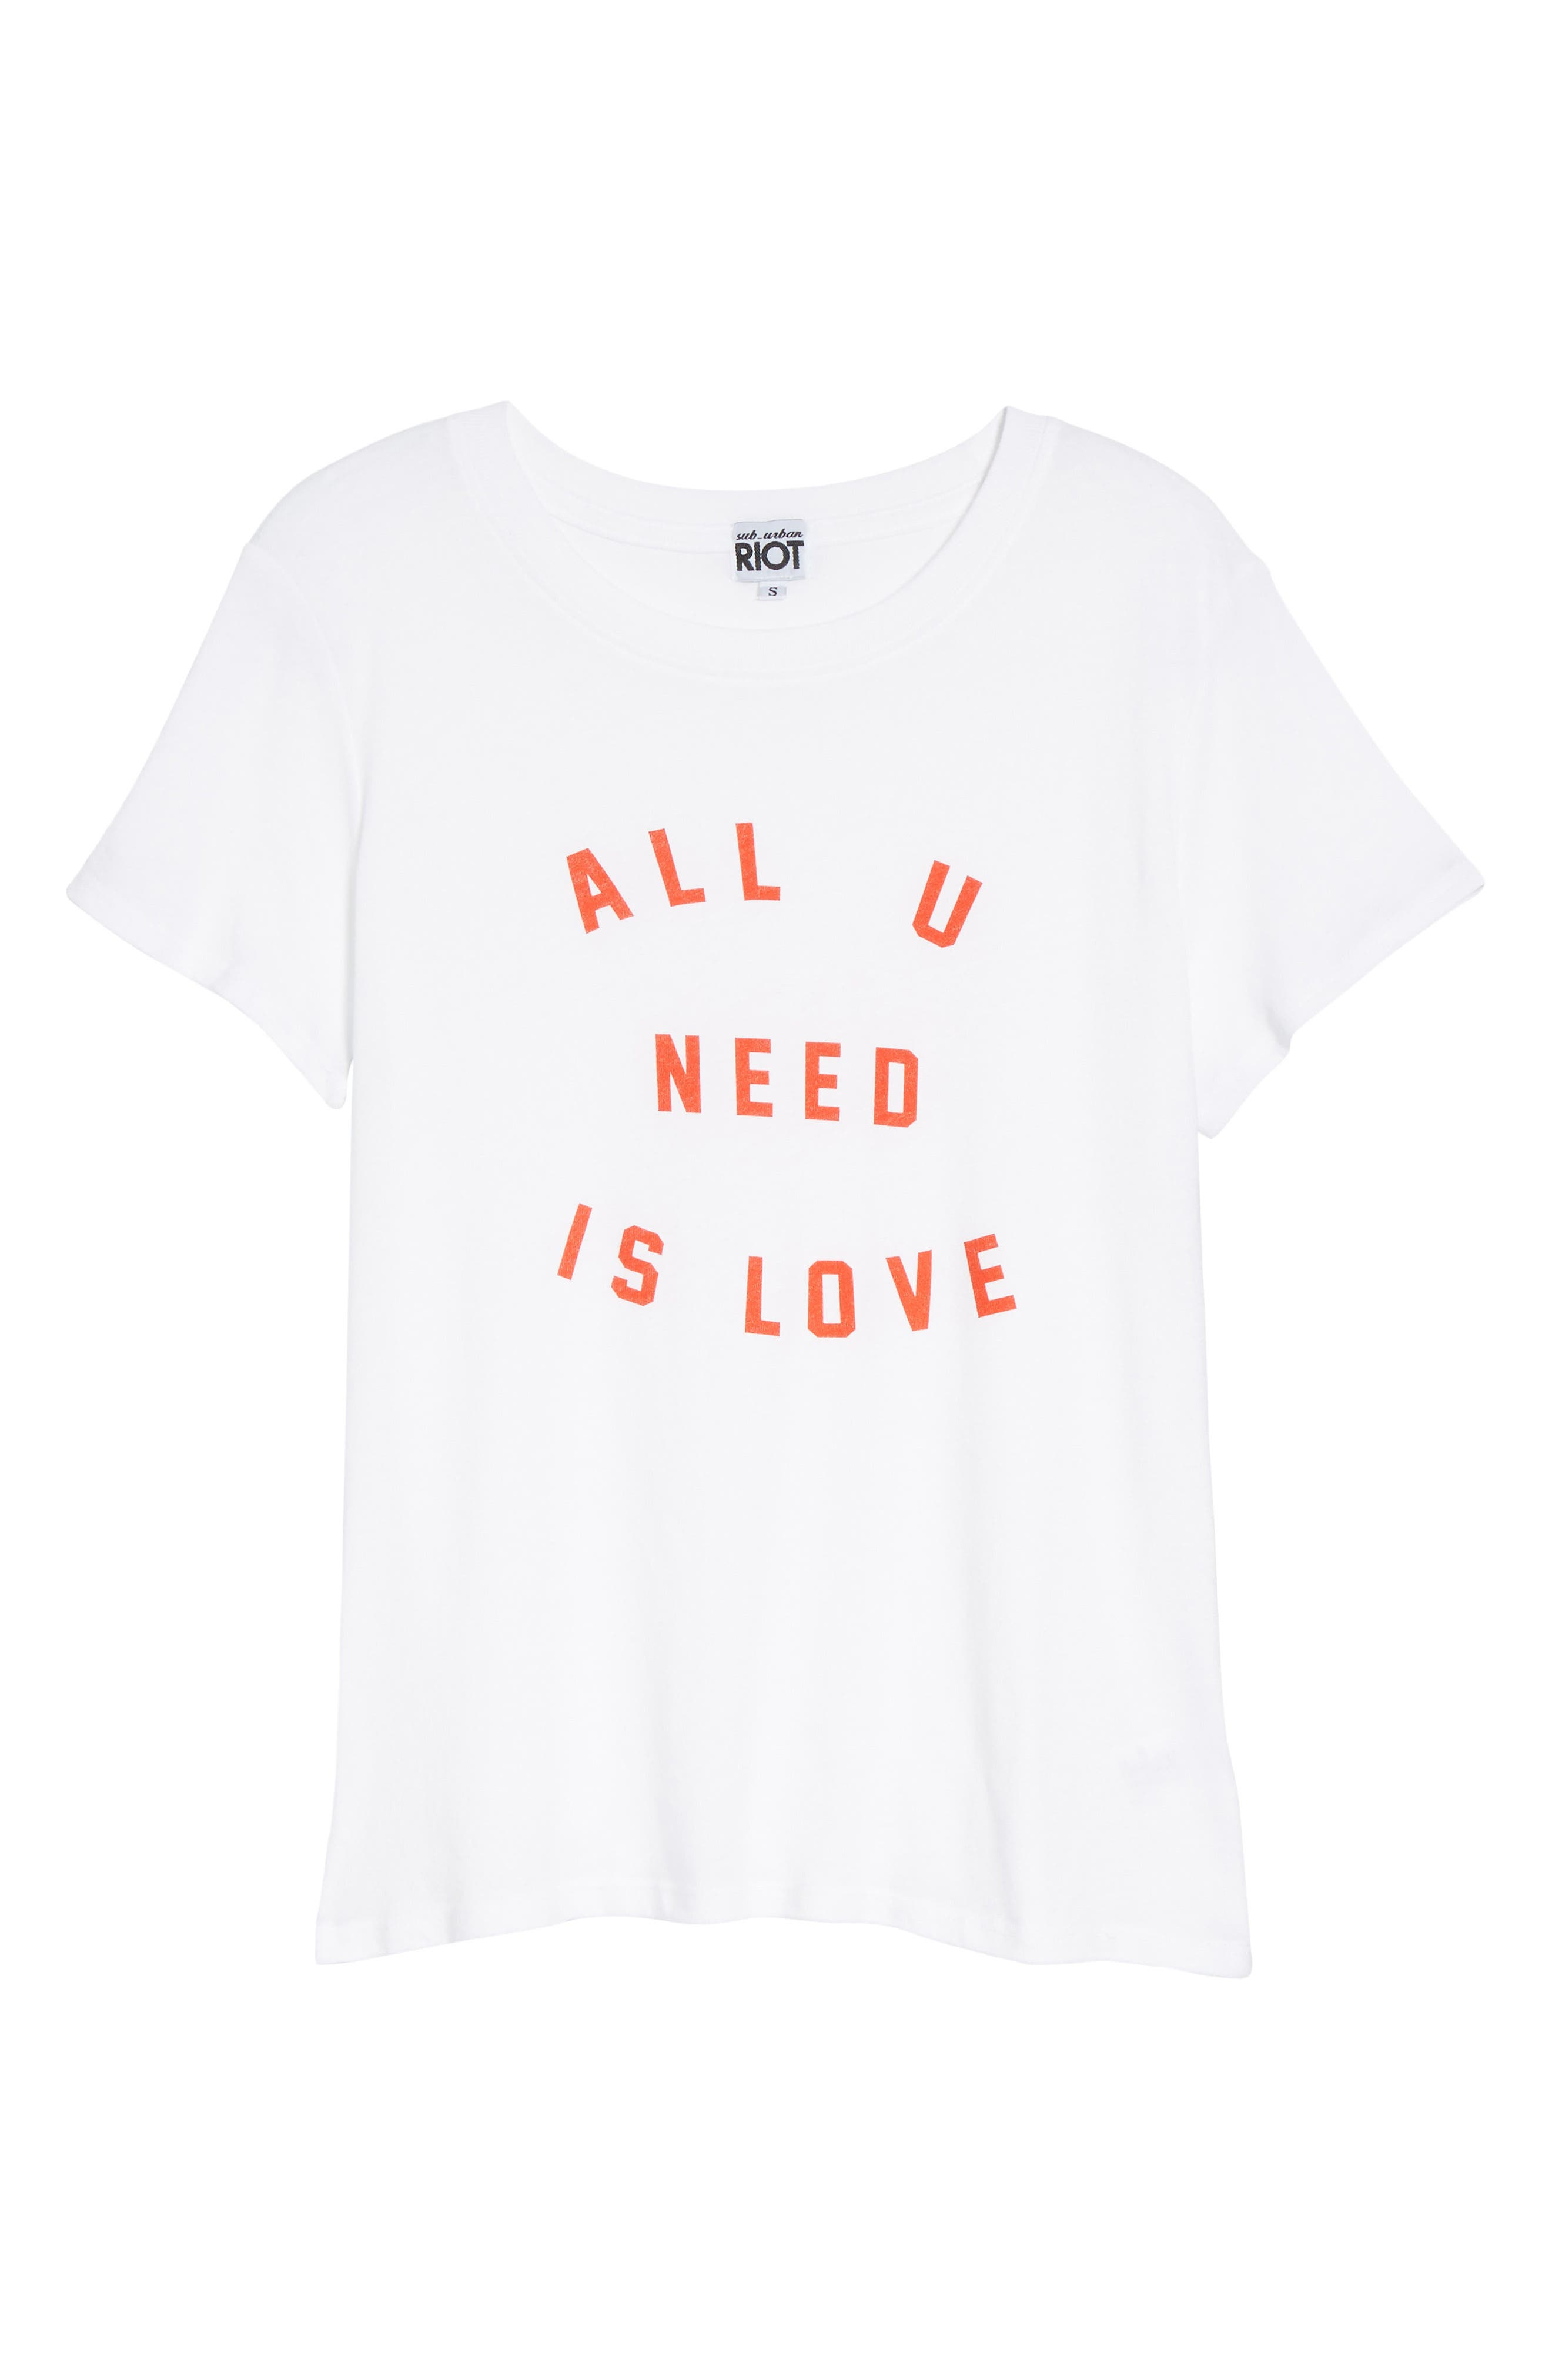 All U Need Is Love Graphic Tee,                             Alternate thumbnail 6, color,                             100